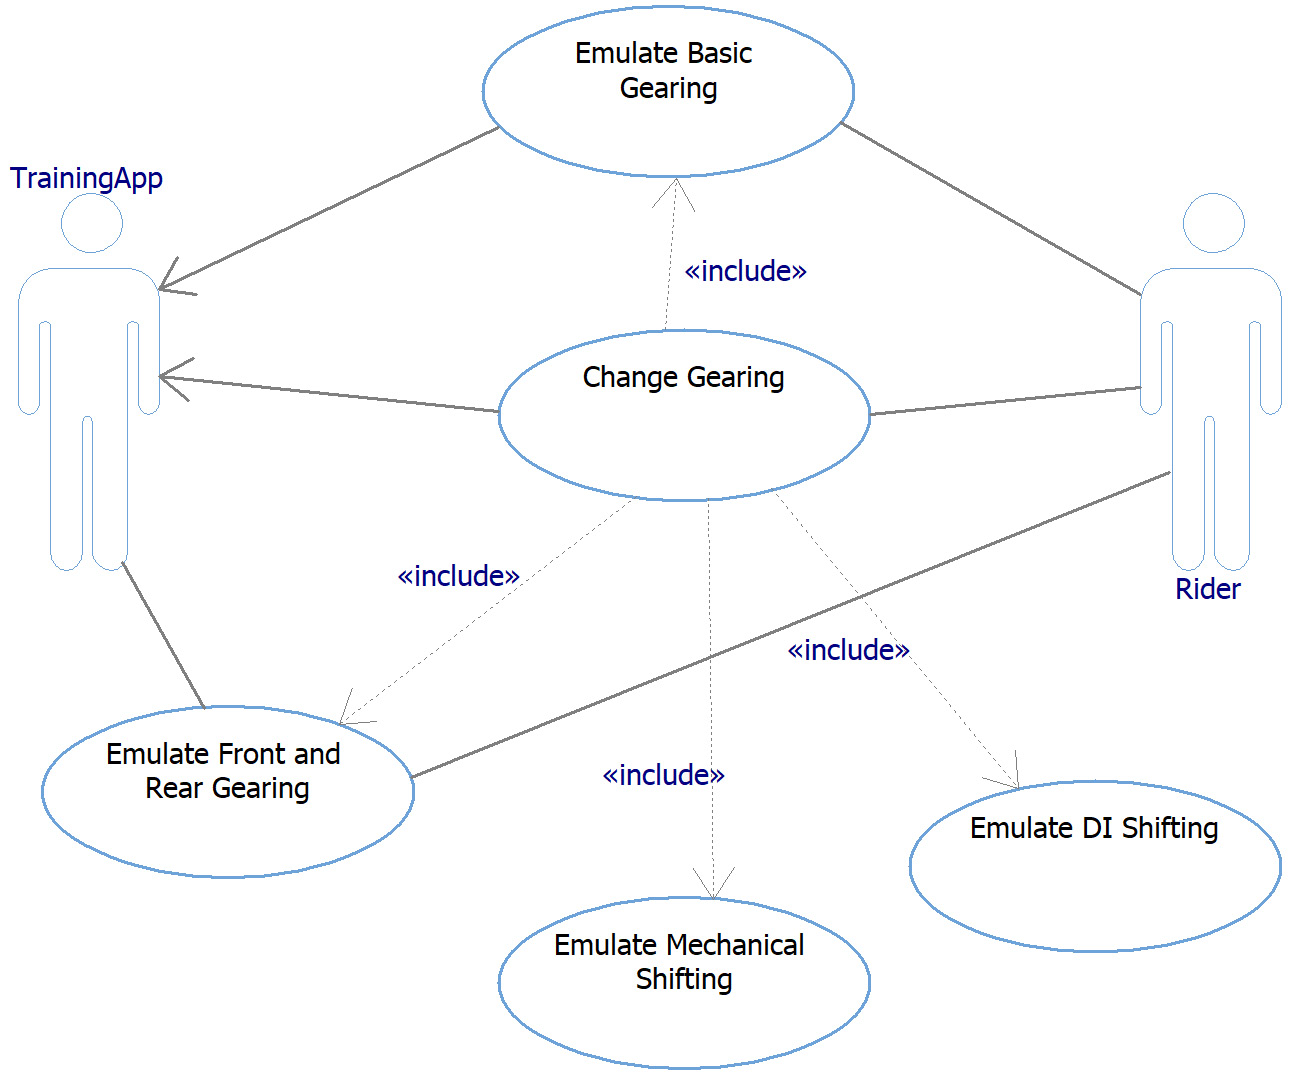 Figure 2.32 – Emulate Front and Rear Gearing use case in context